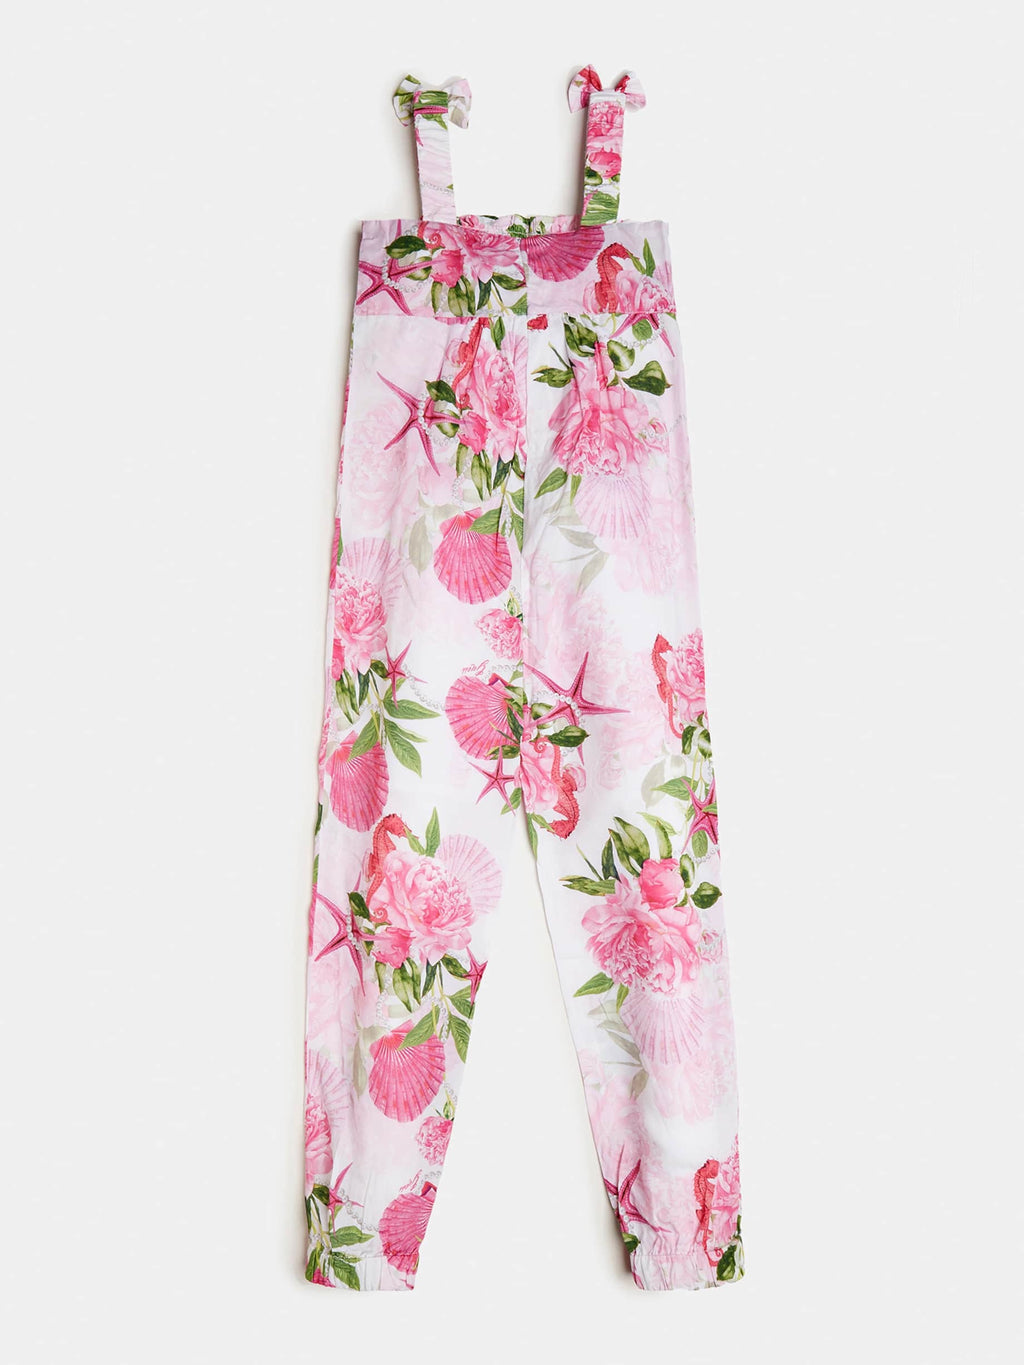 Floral Patterned Jumpsuit - MamaSmile